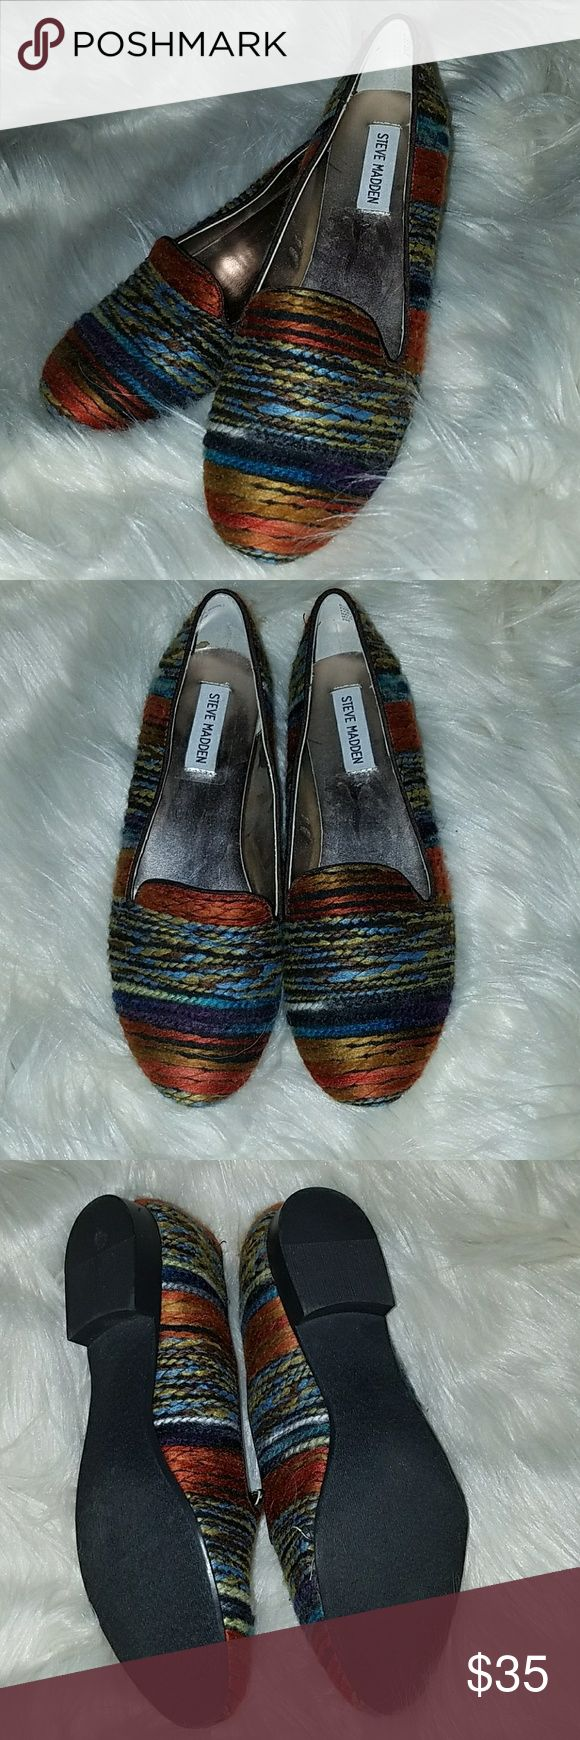 Steve Madden Multi-colored Flats Oh, these had great plans.  They resemble yarn, so I wanted to wear them to the next party for the shop I managed.  Well,  I got a new job, so no yarn party. These poor babies sat in the closet, never worn. Steve Madden Shoes Flats & Loafers